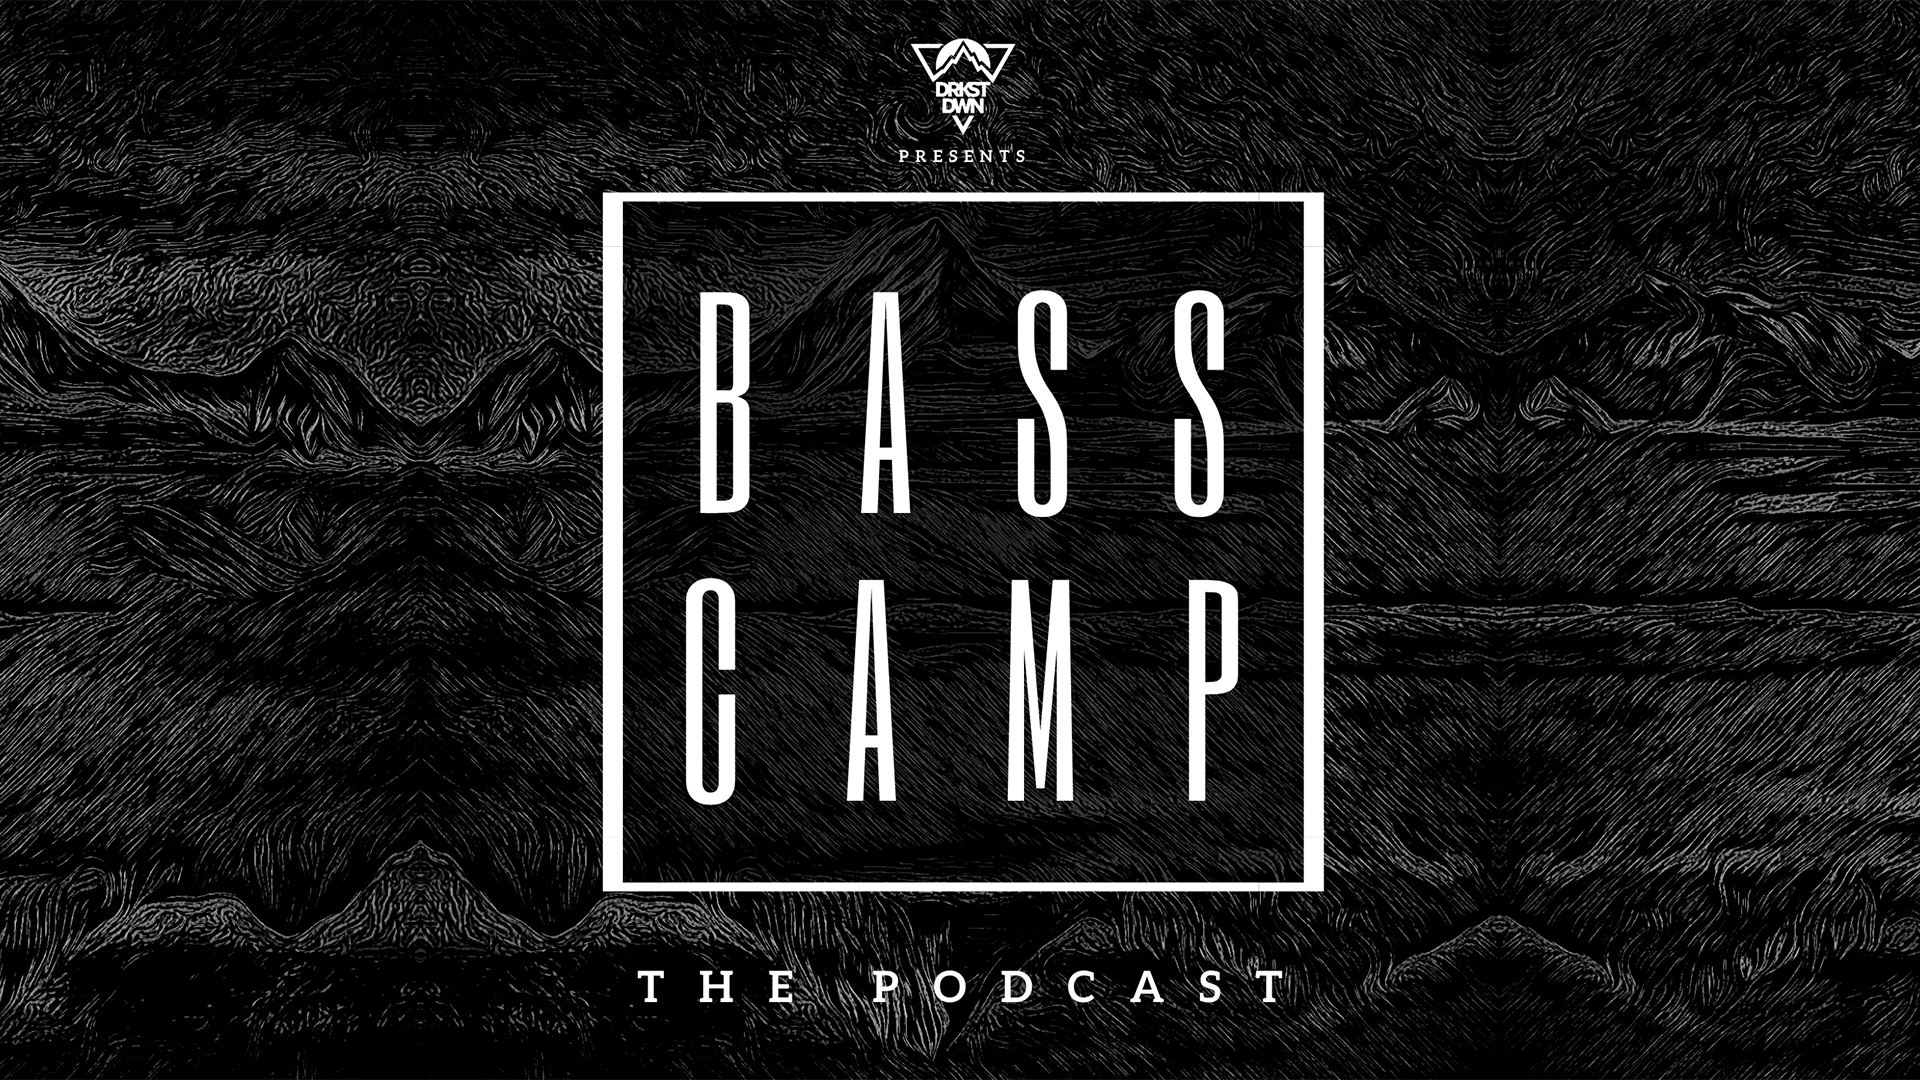 Welcome to Bass Camp. Image